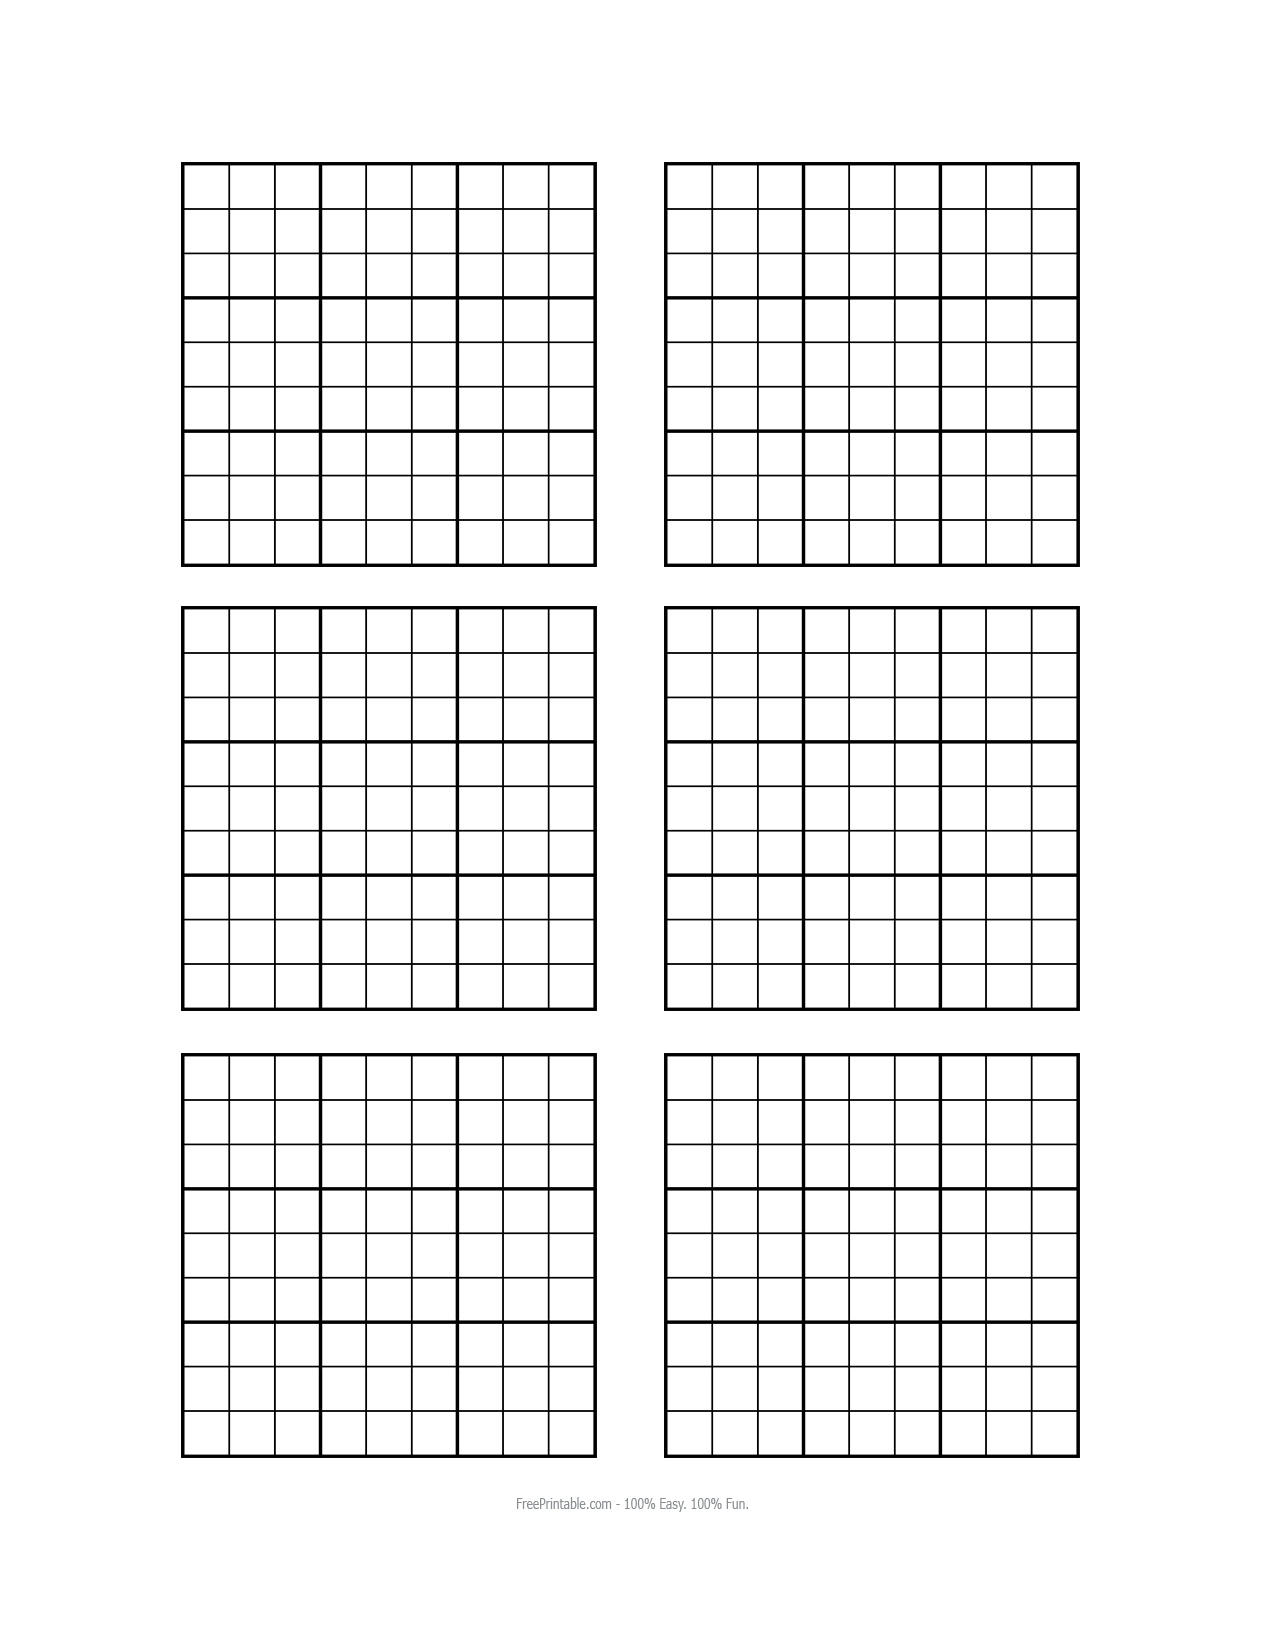 Search Results For Printable Blank Sudoku Grid